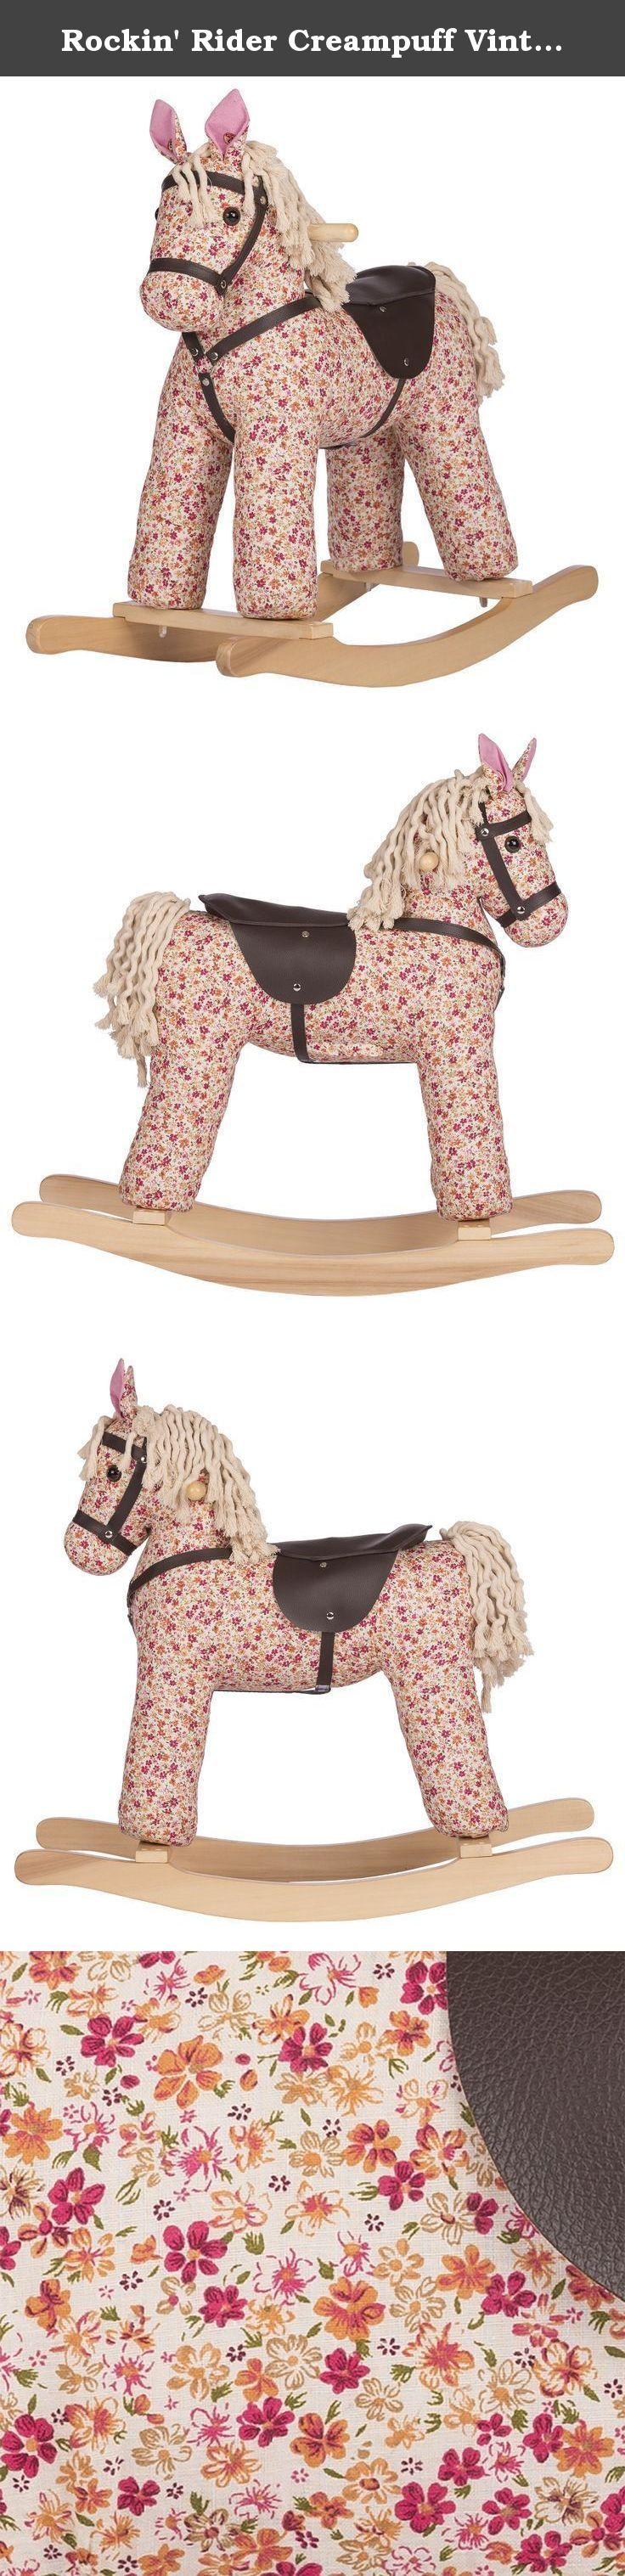 """Rockin' Rider Creampuff Vintage Rocking Horse Plush. Creampuff is a soft stuffed Vintage Rocking Horse made with flowery fabric for a vintage, hand-crafted look. She sits on a beautiful wooden base. Creampuff sings the exclusive """"I'm a Little Pony"""" song when her left ear is squeezed and says 6 fun talking phrases with sound effects when her right ear is squeezed. Other features include leatherette bridle and reins, leatherette high-back saddle, wooden handles, and a twisted yarn mane and..."""